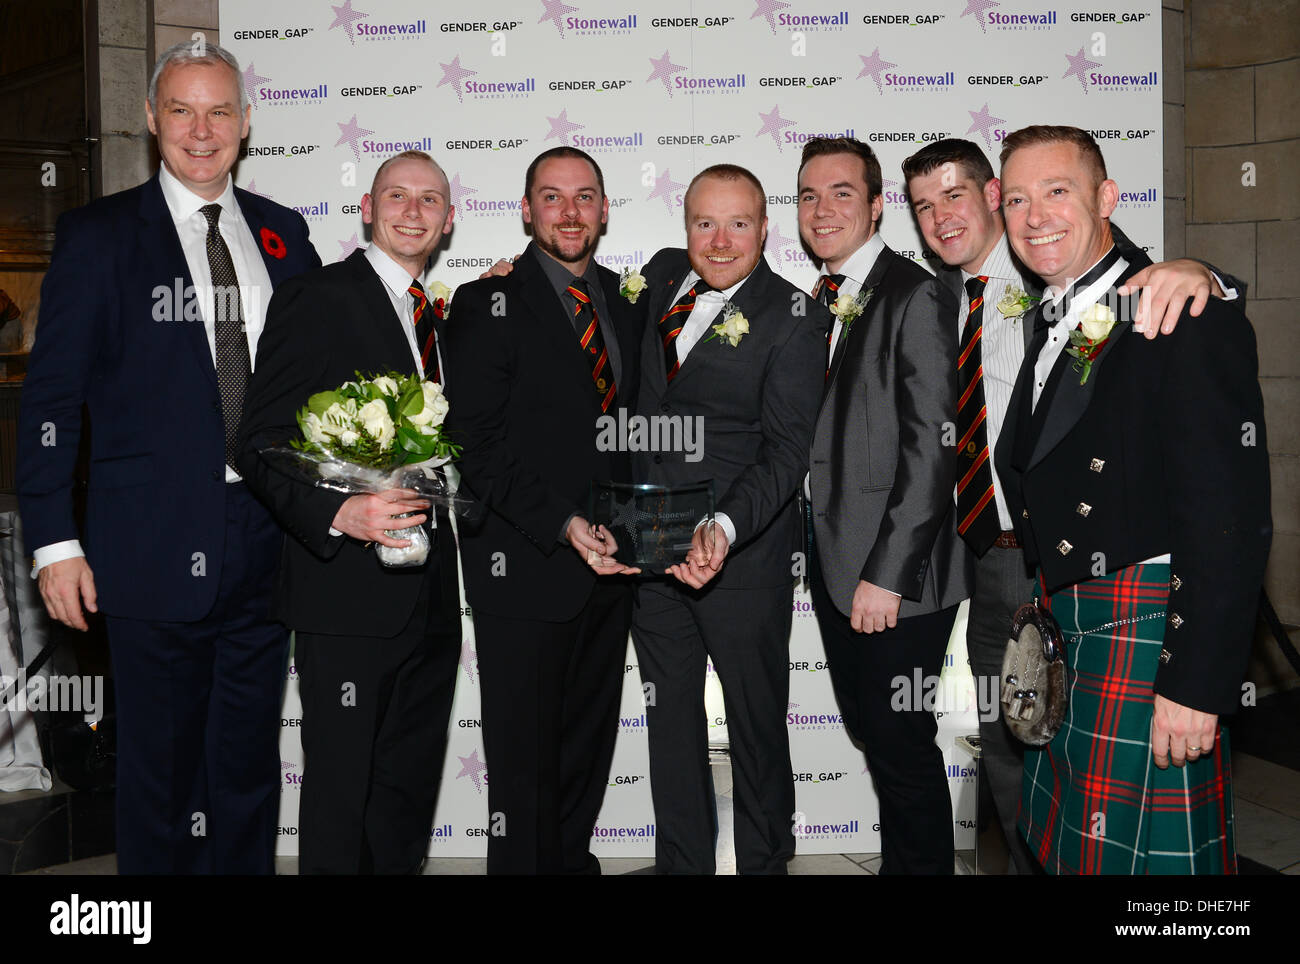 London, UK. 7th Nov 2013.  Cardiff Lions, Sports Award of the year of the Stonewall Awards 2013 taking place at the Victoria and Albert Museum. Credit:  See Li/Alamy Live News - Stock Image